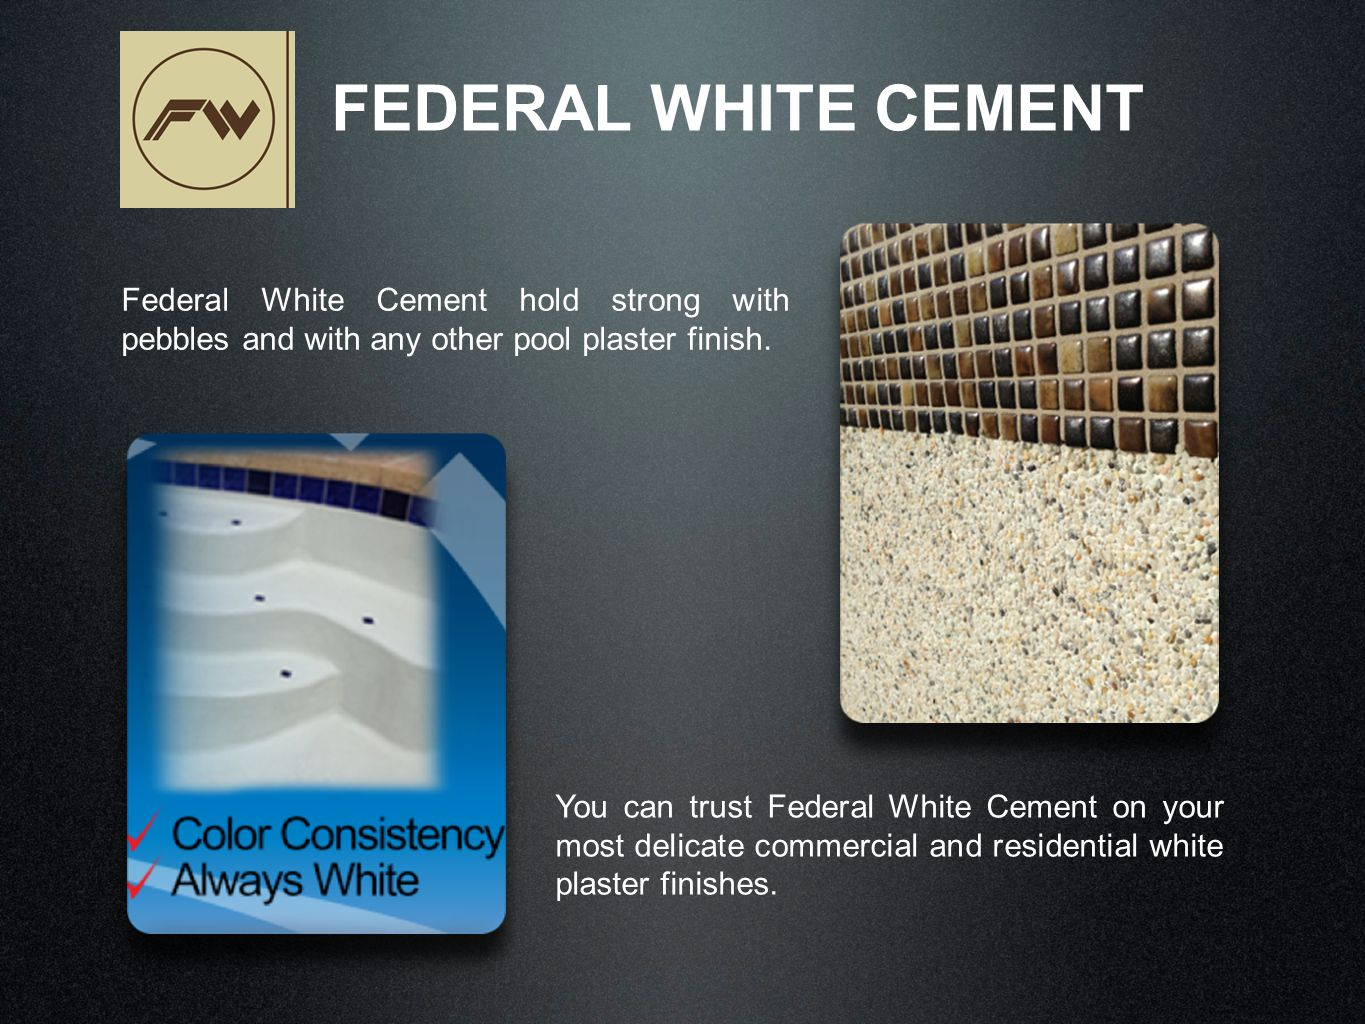 Federal White Cement hold strong with pebbles and with any other pool plaster finish.